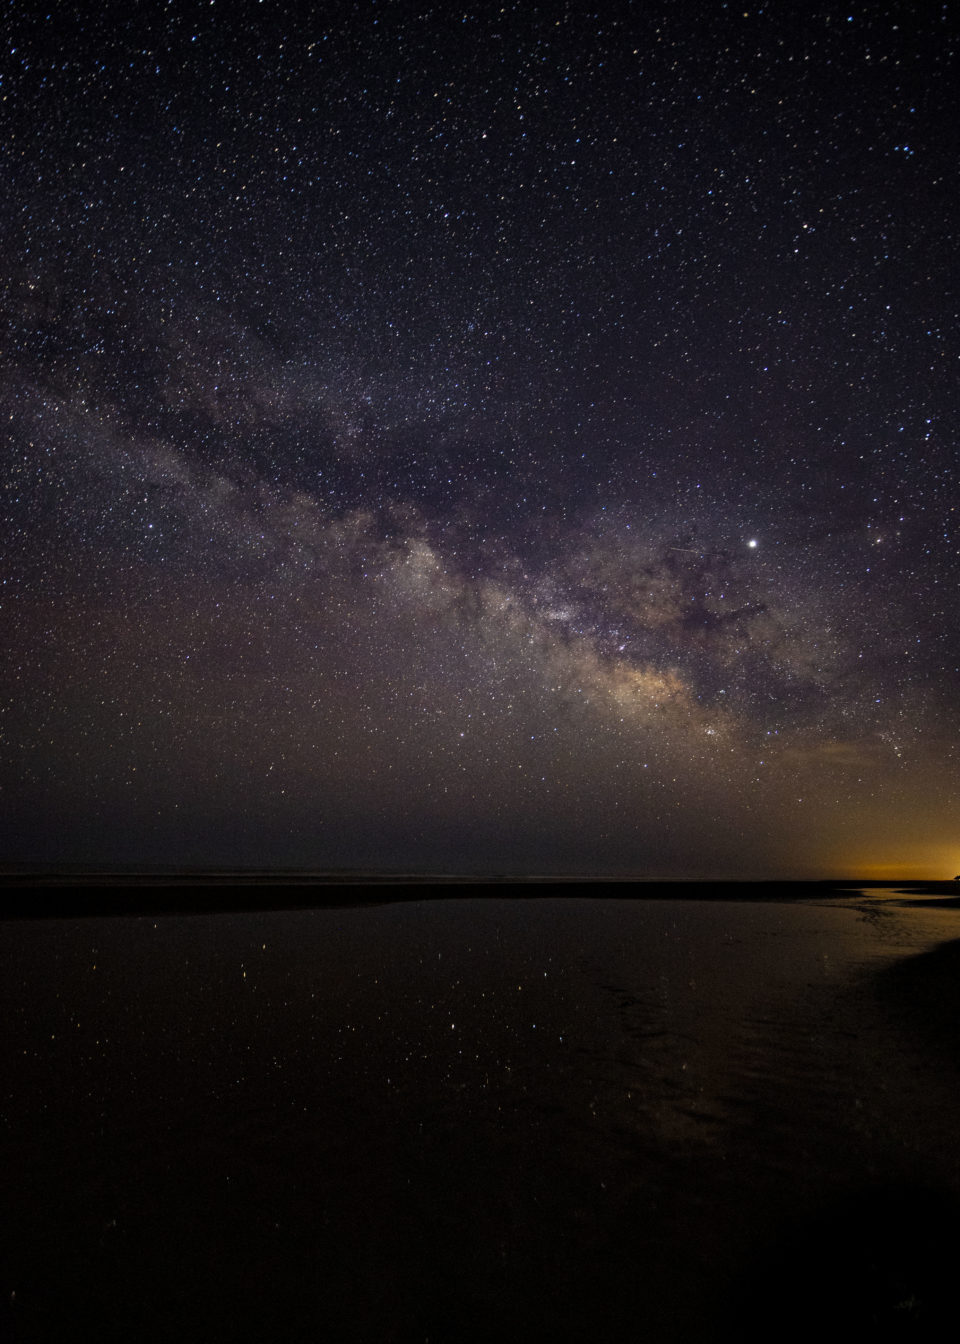 milky way, false cape state park, misty saves the day, stars in virginia beach